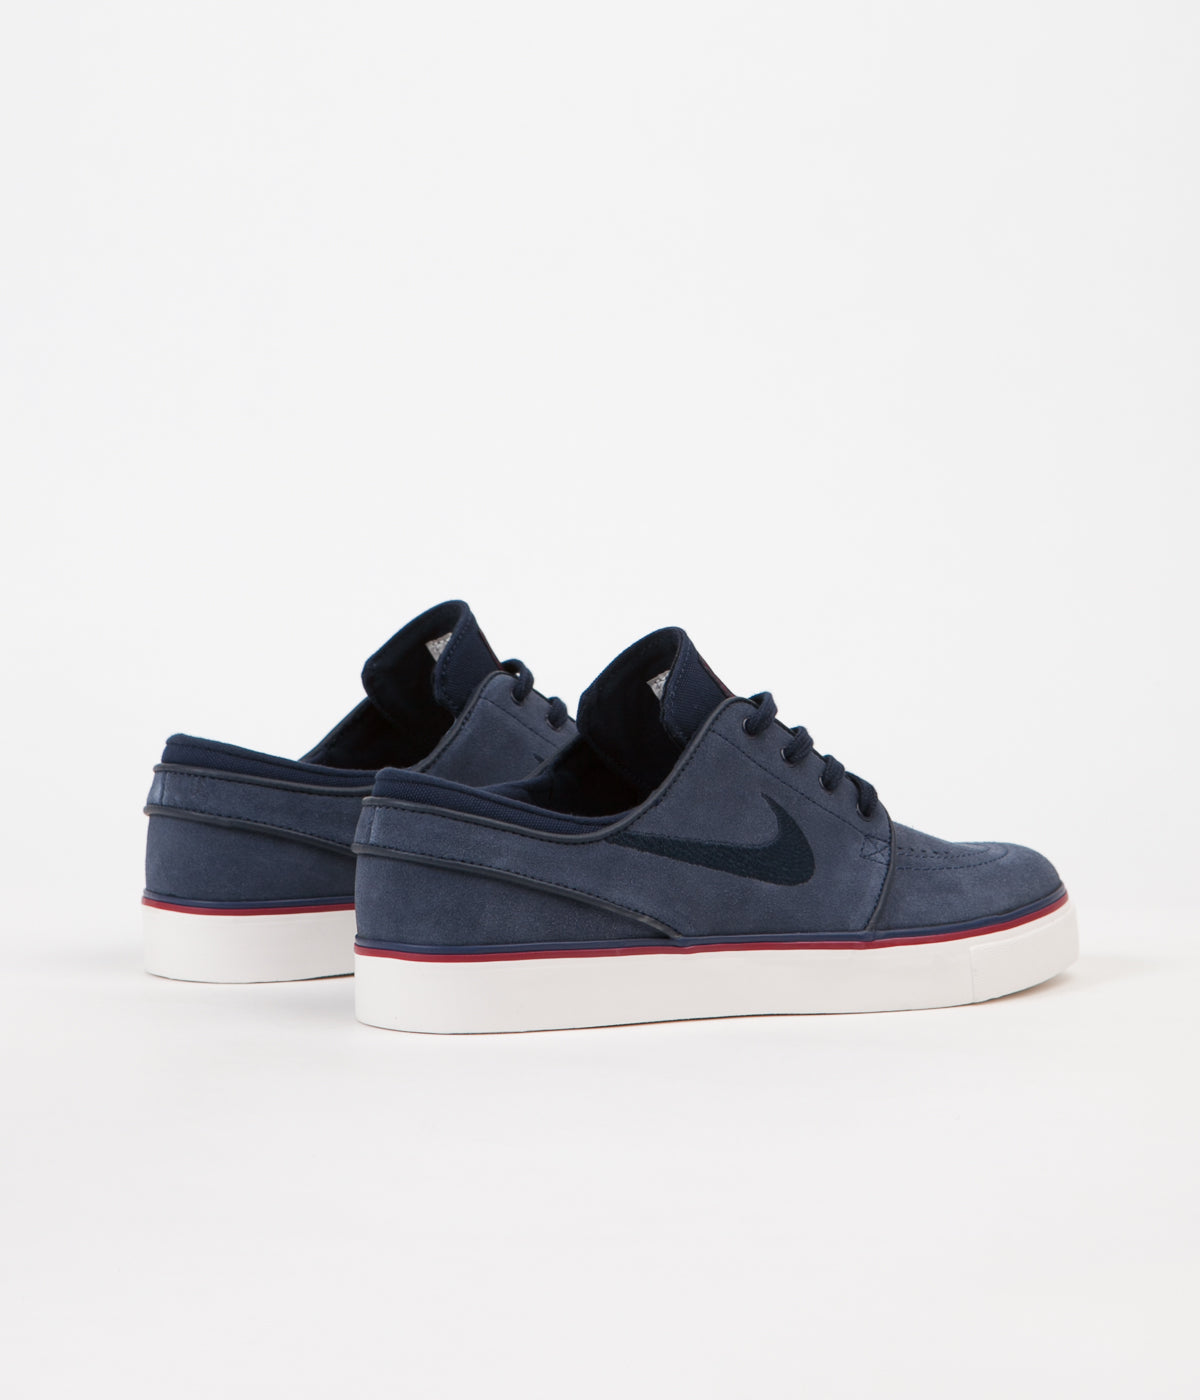 nike sb womens stefan janoski shoes obsidian dark obsidian team flatspot. Black Bedroom Furniture Sets. Home Design Ideas